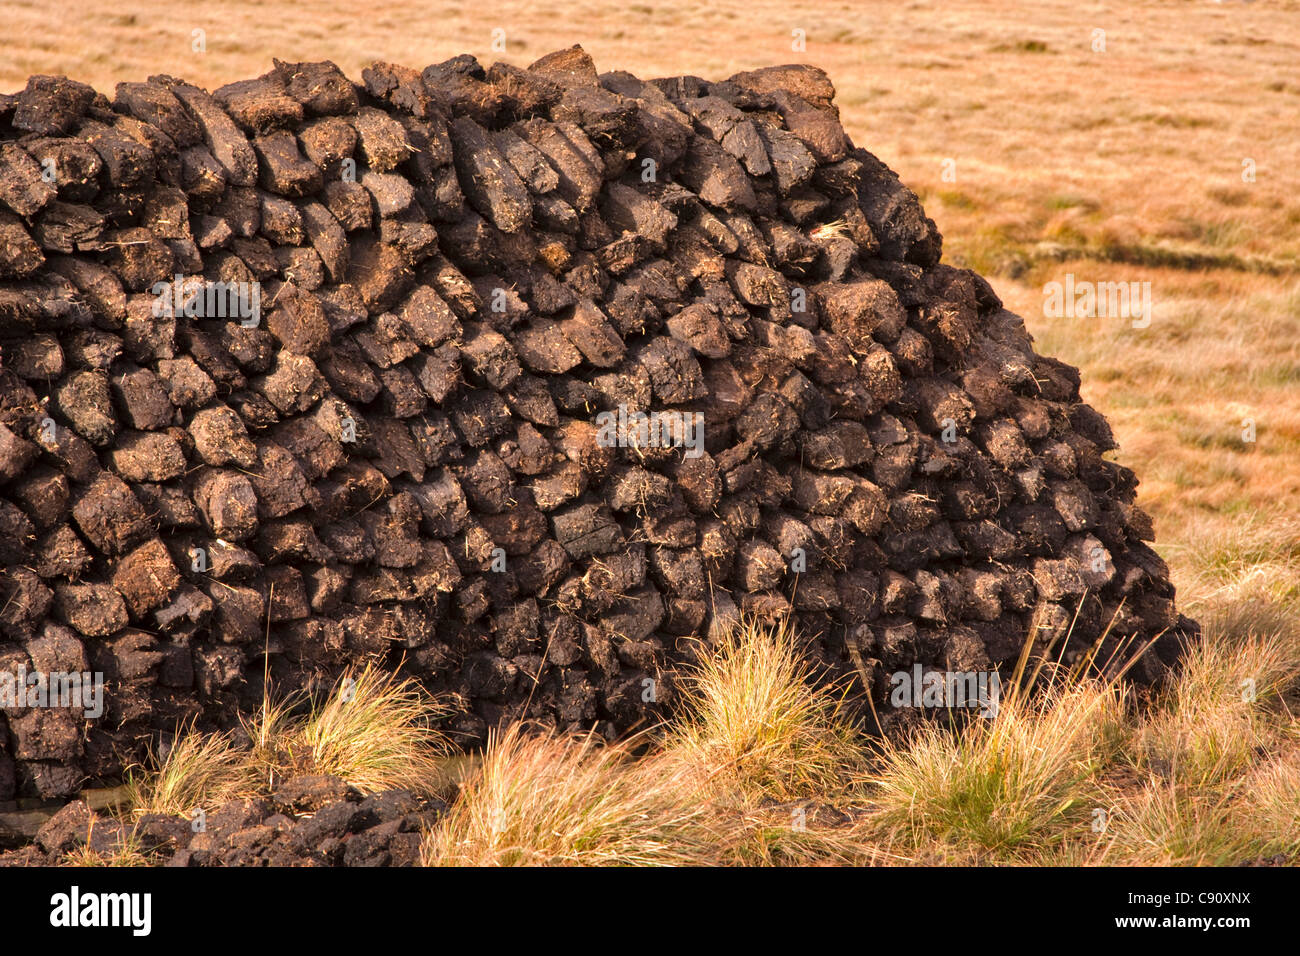 Peat turves stacked for drying in Connemara, Ireland - Stock Image